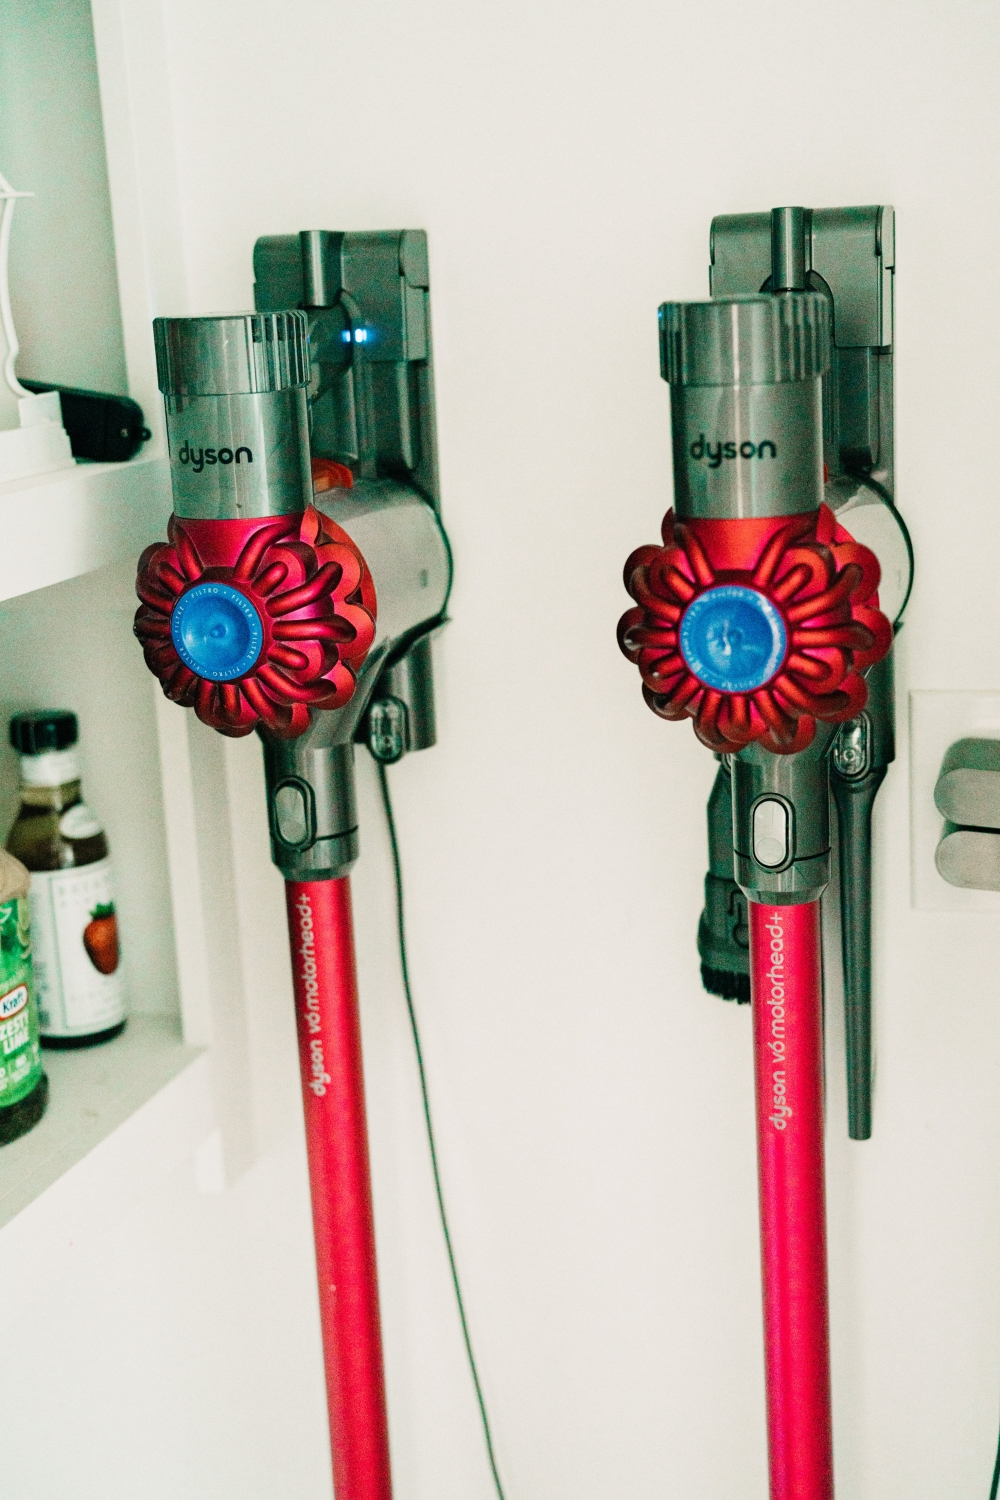 Dyson Vacuums Hanging on The Wall